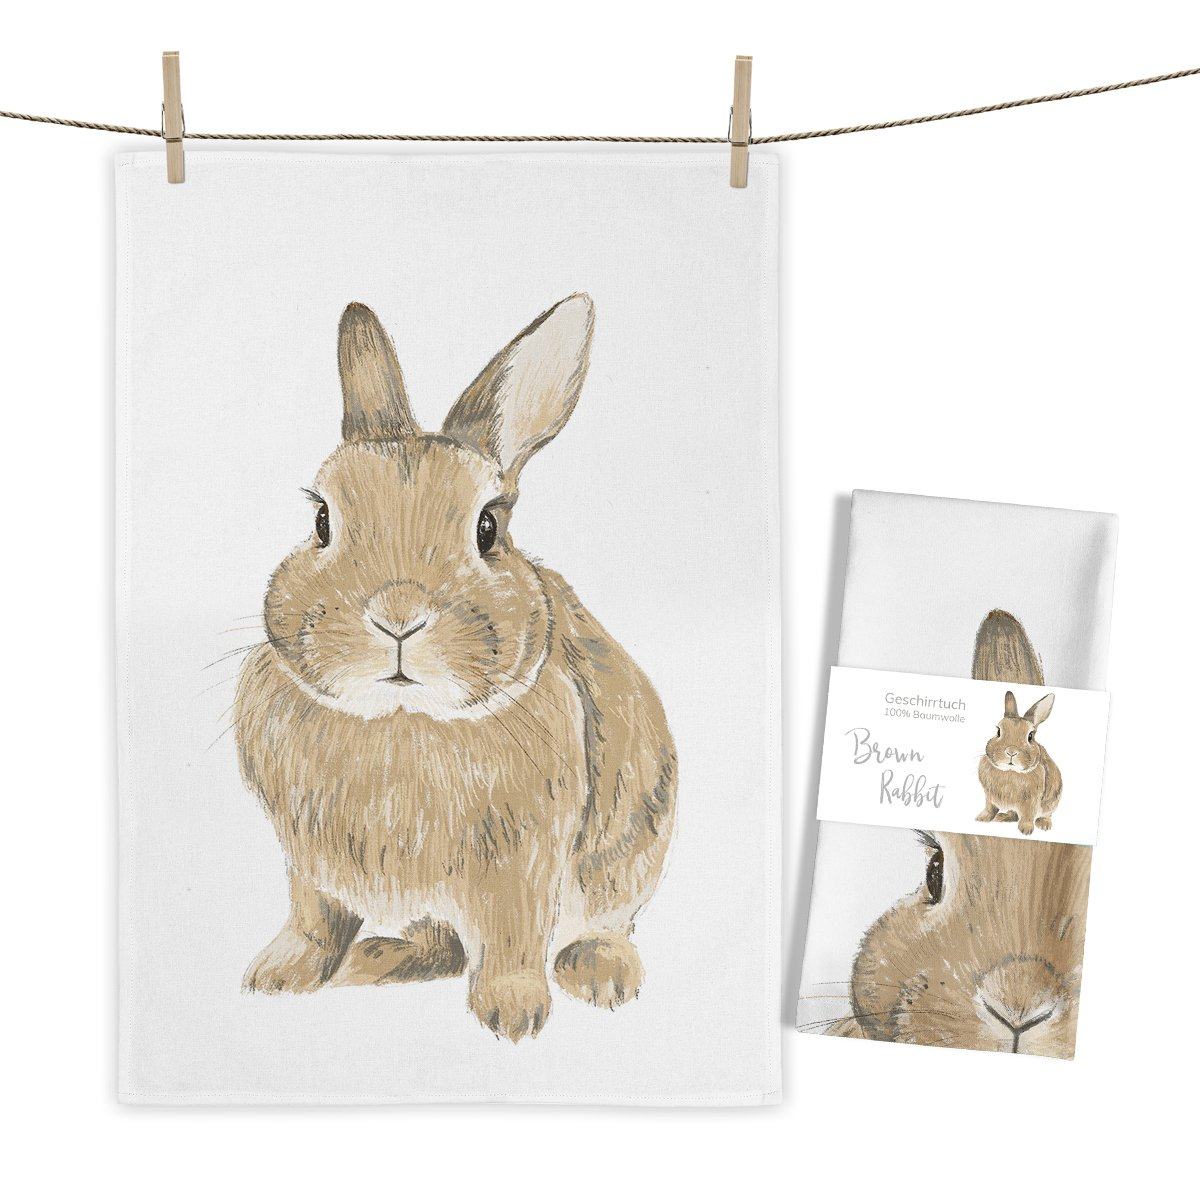 MALUU-RABBIT-Geschirrtuch-brown1